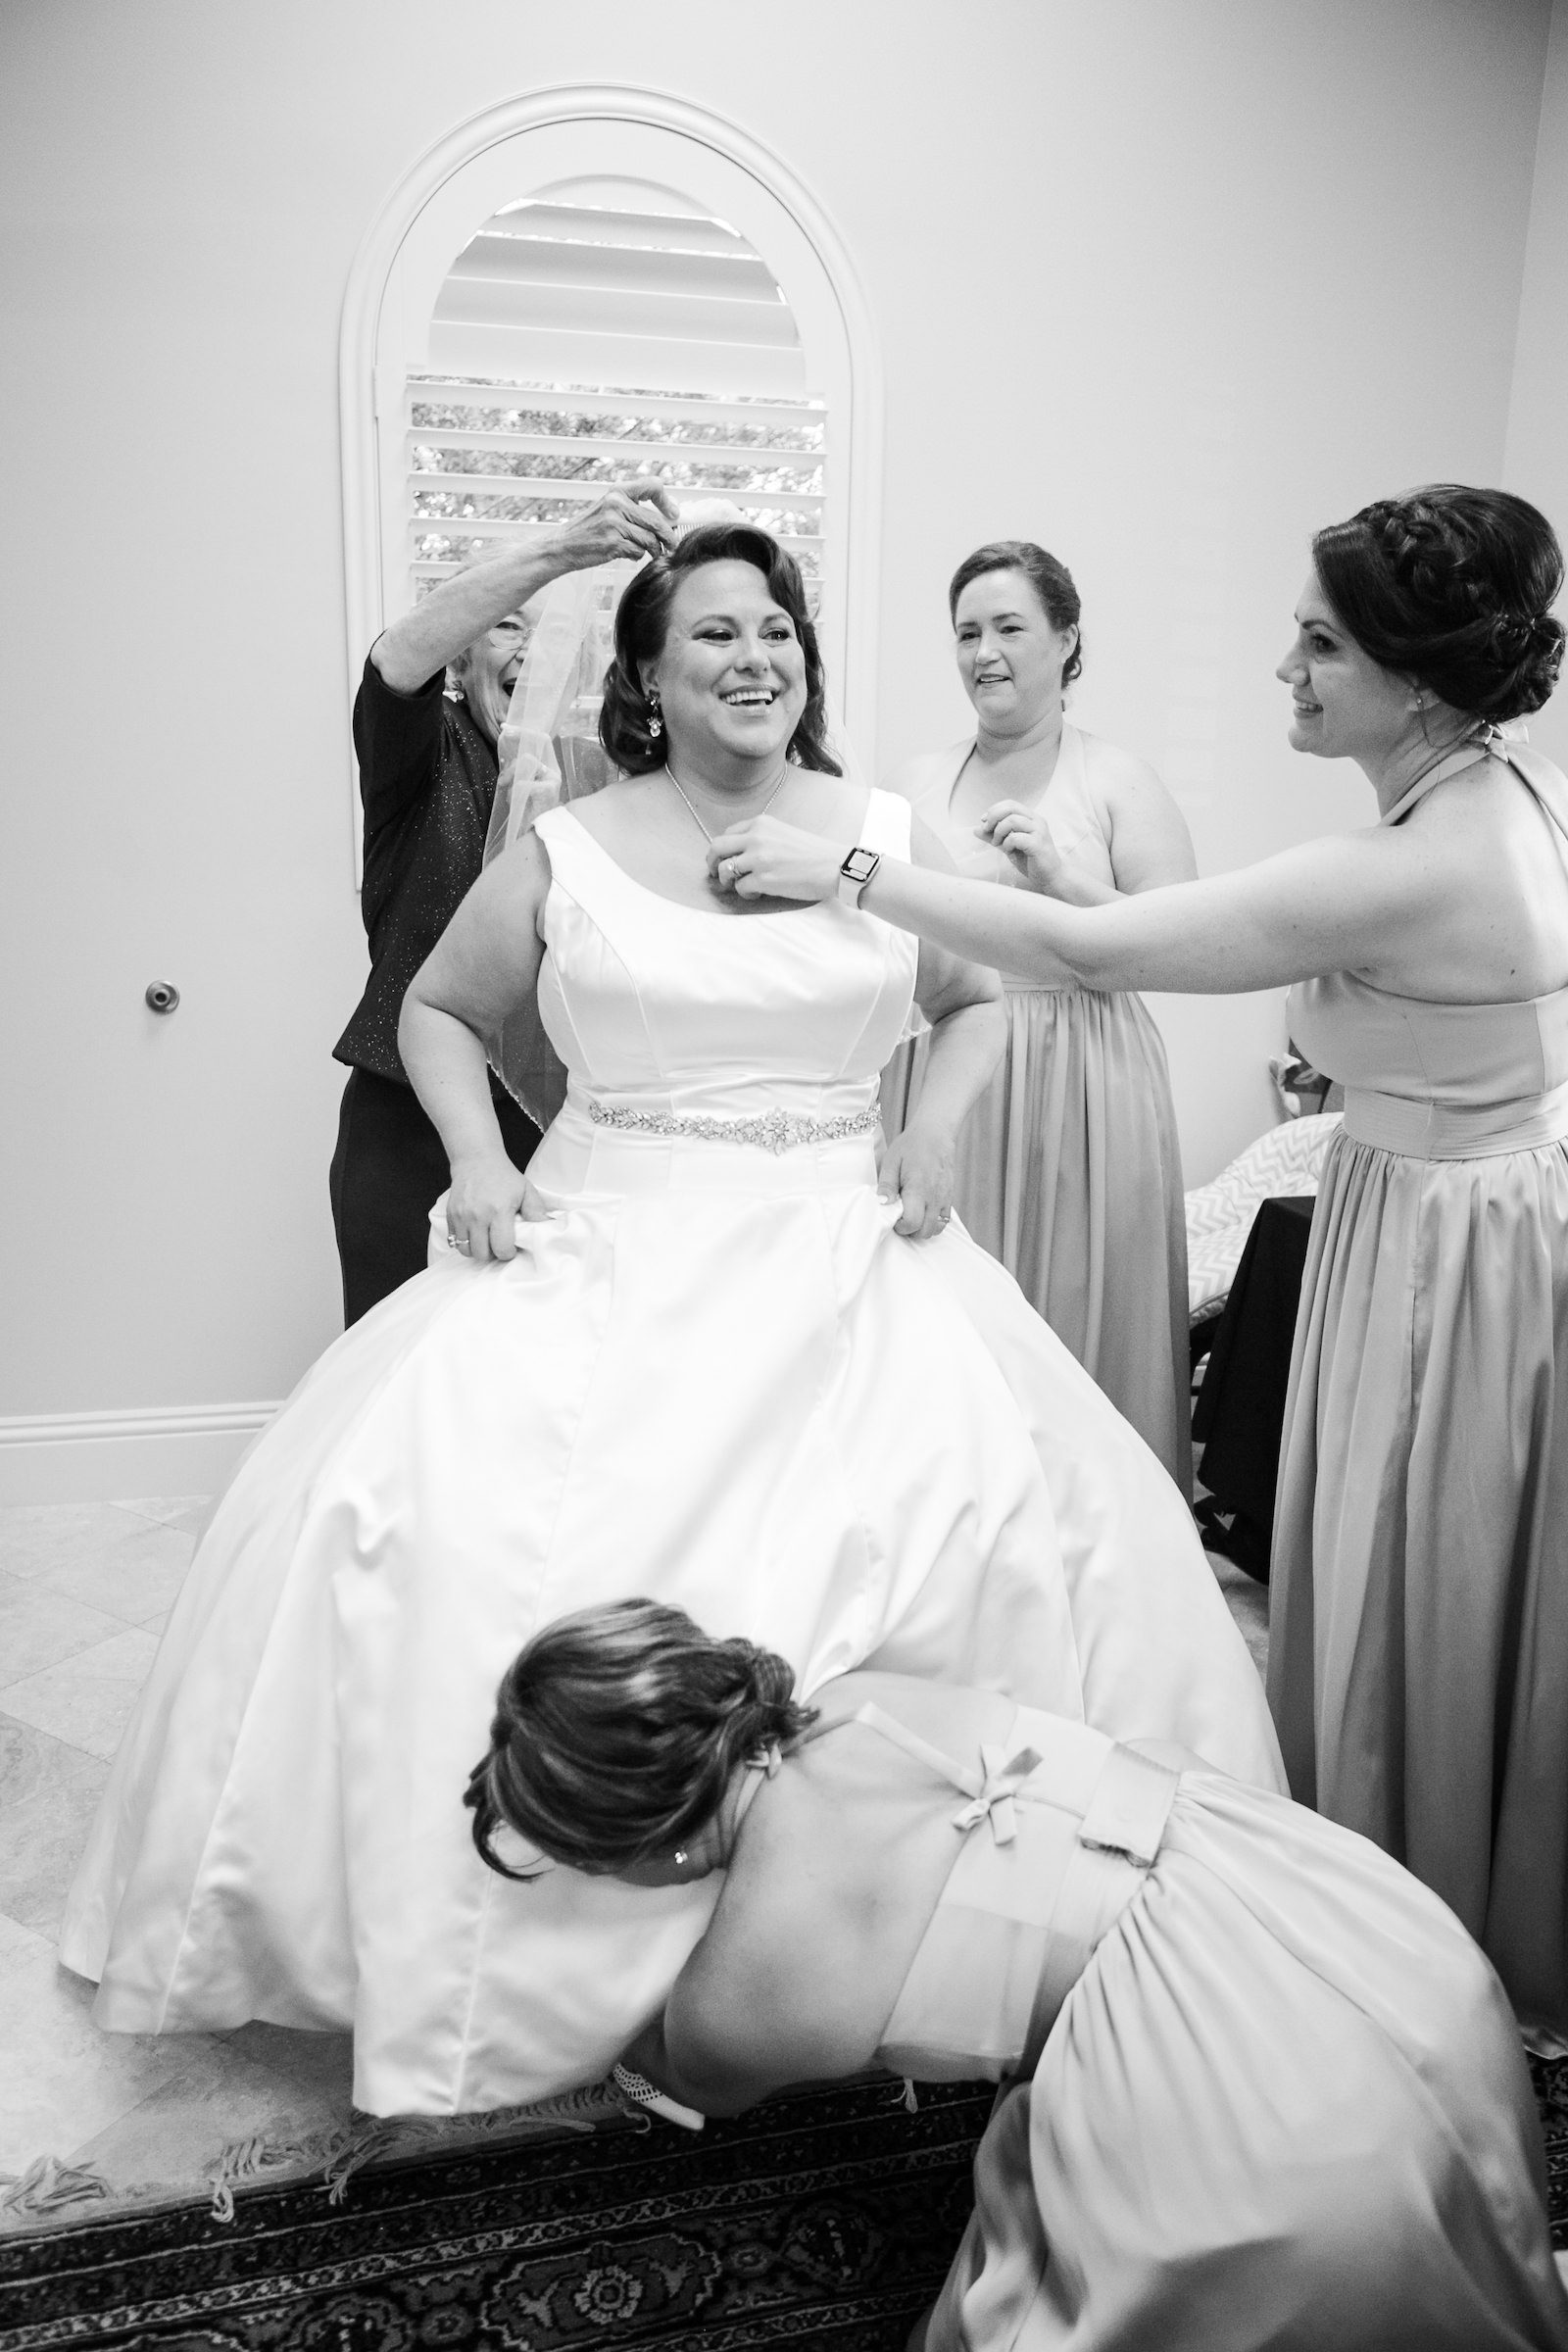 Tampa Bride Getting Ready Wedding Portrait with Bridesmaids | Wedding Photographer Carrie Wildes Photography | Wedding Hair and Makeup Michele Renee the Studio | Wedding Dress Truly Forever Bridal